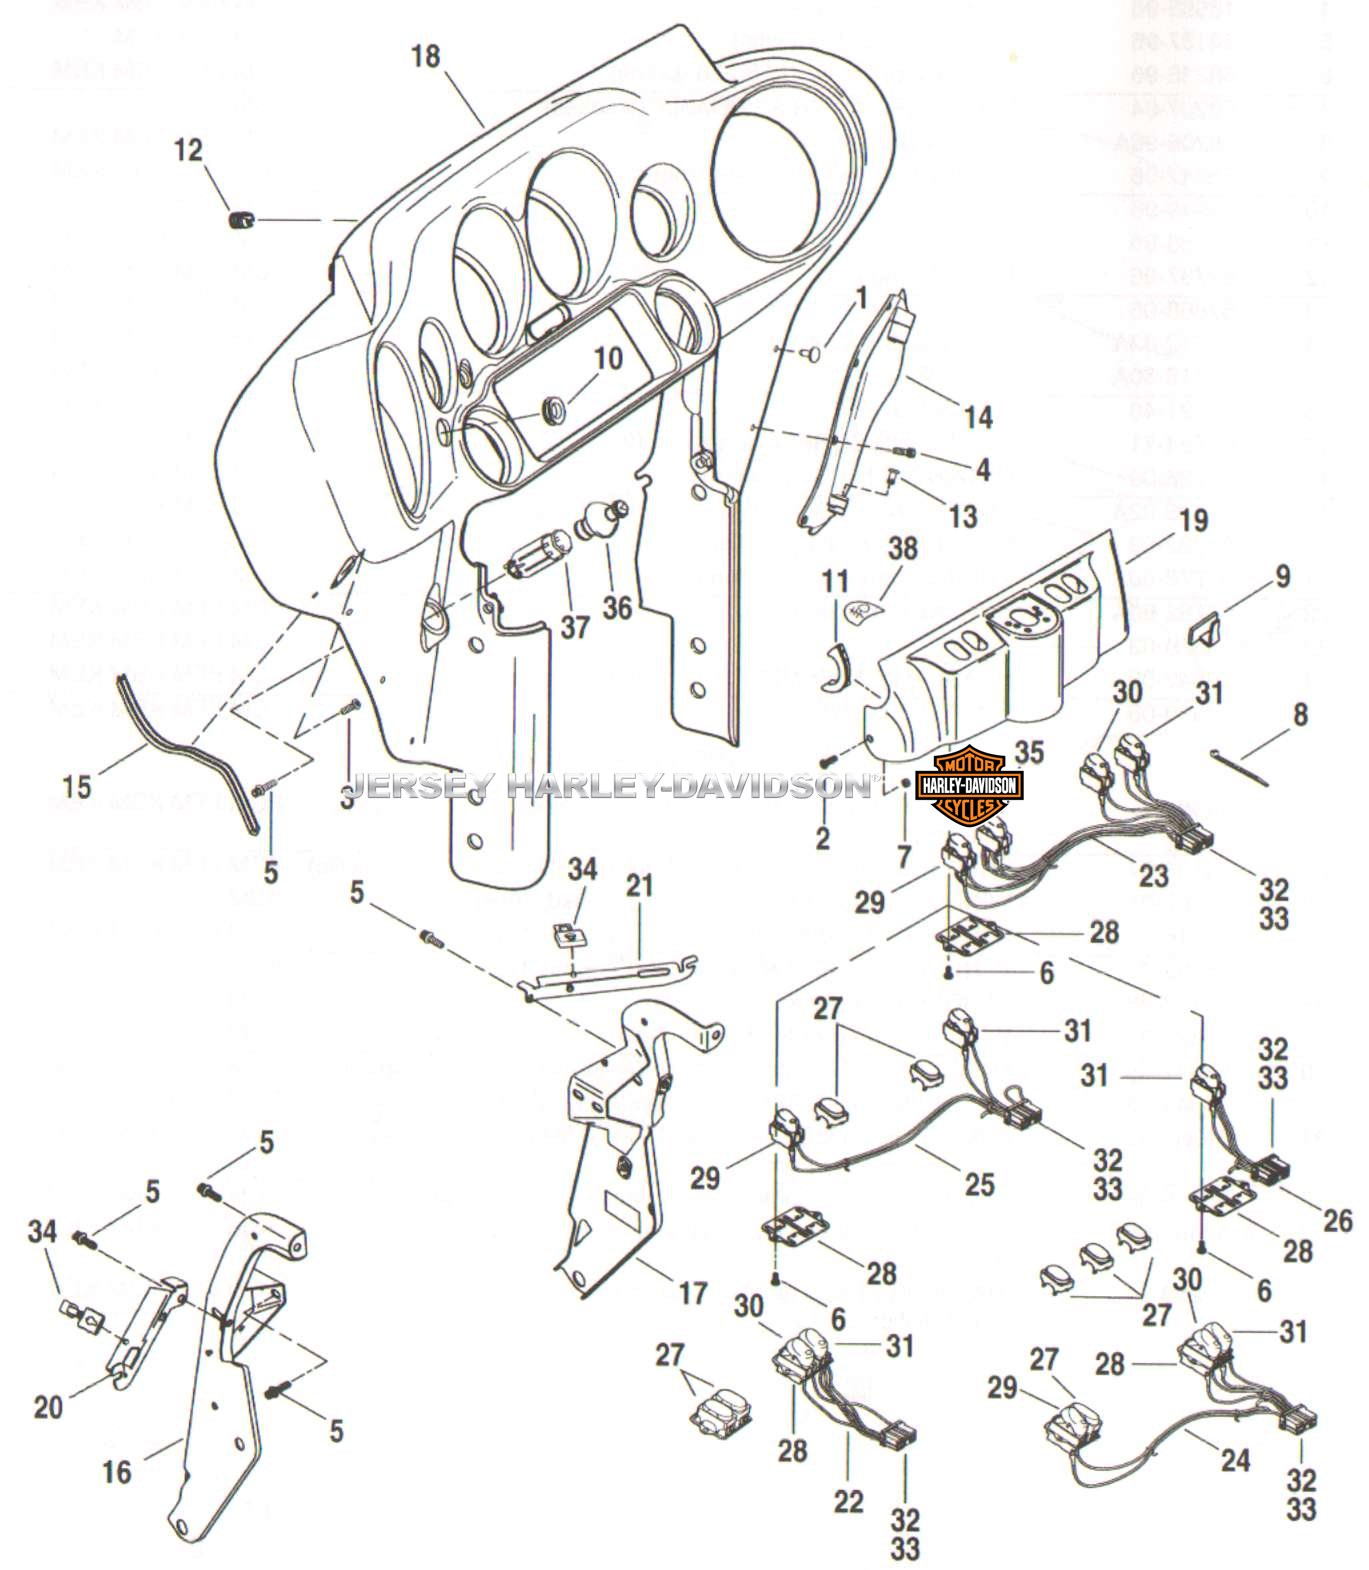 2011 harley road king wiring diagram for dummies  diagram